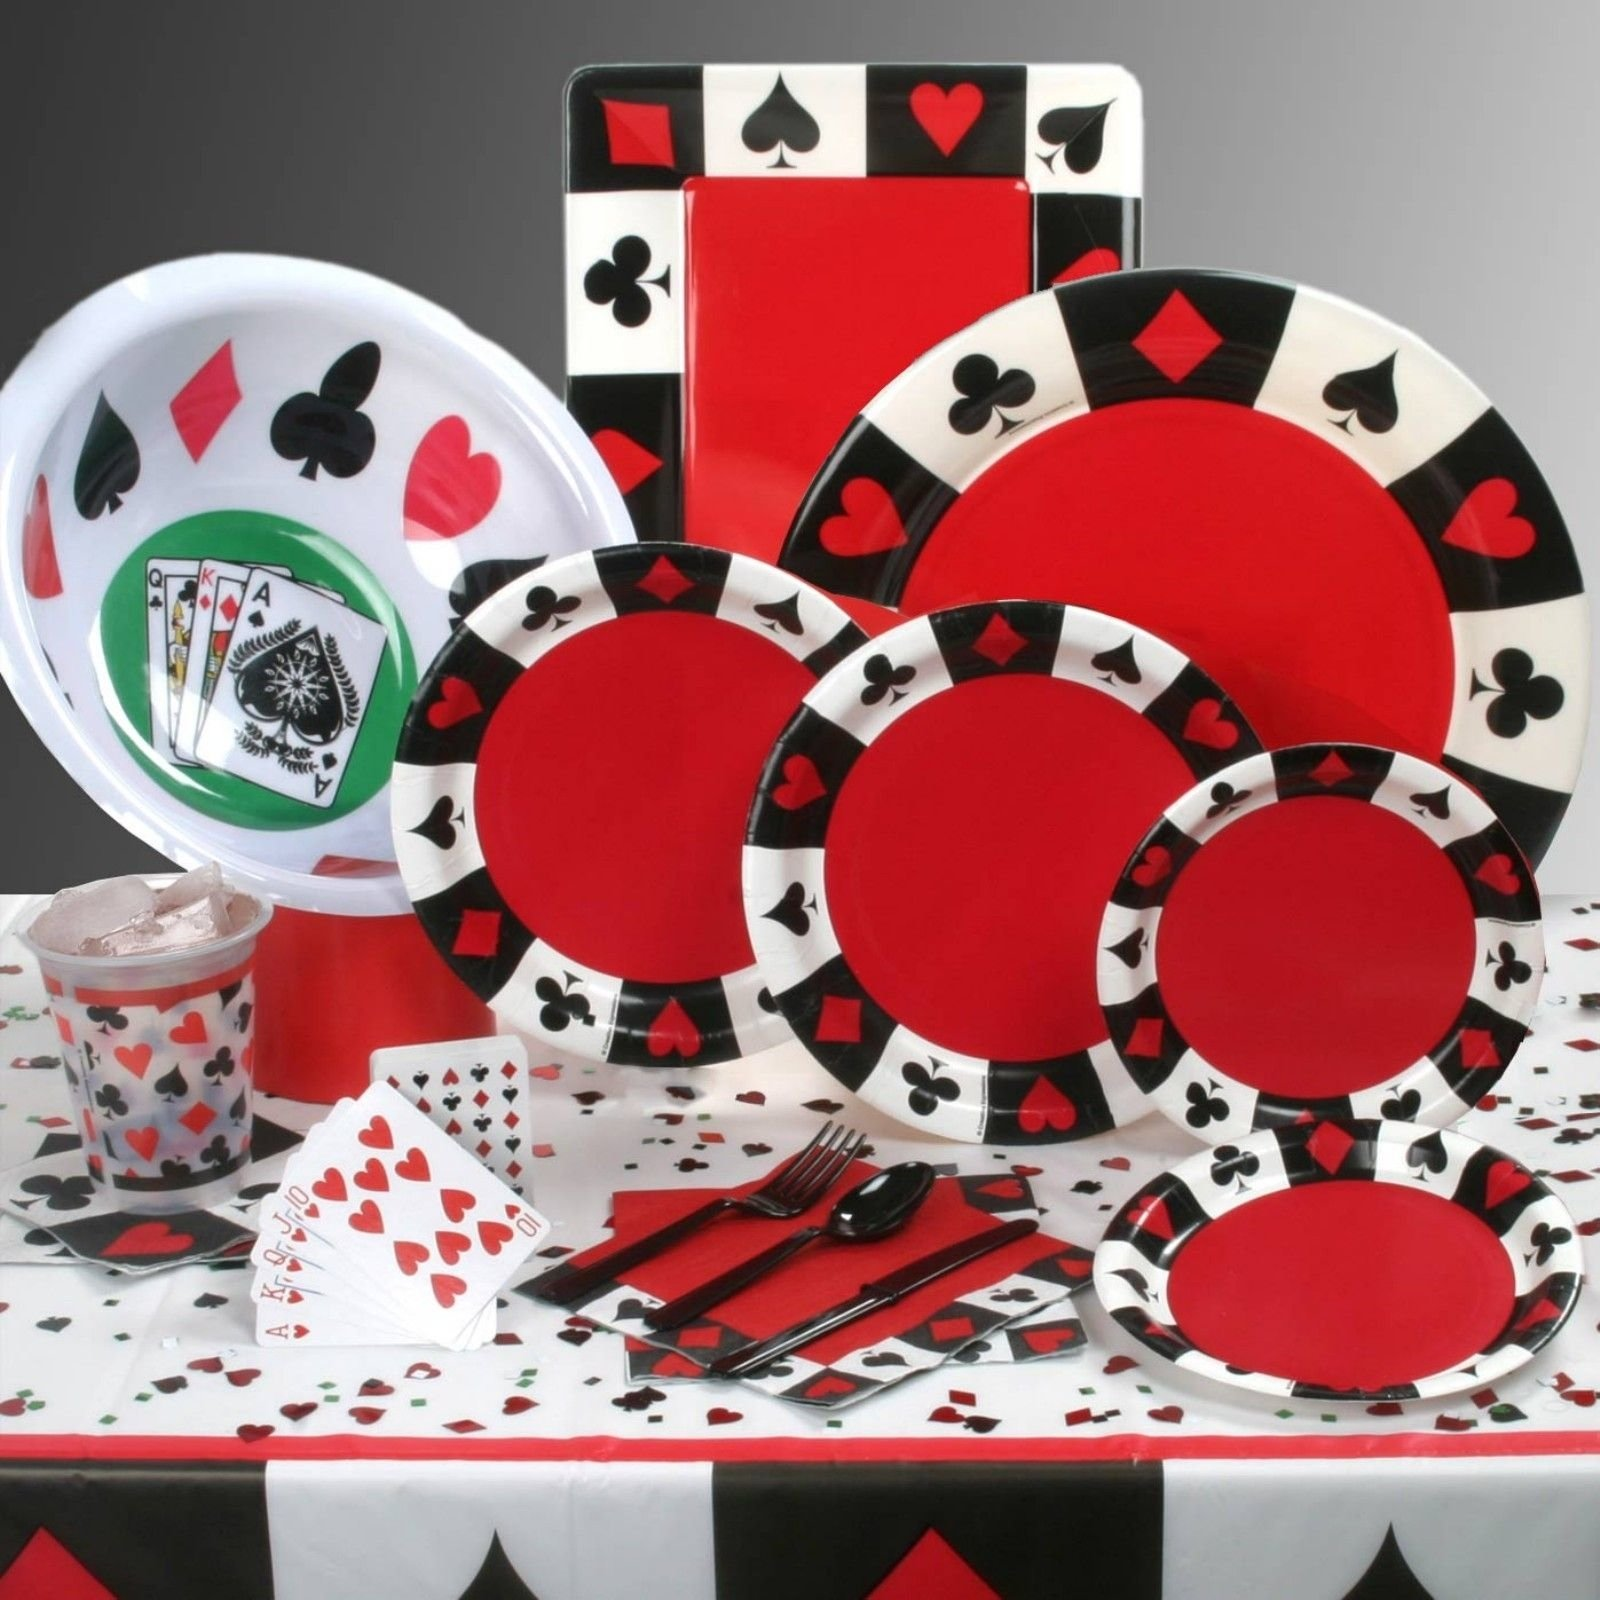 10 Unique Theme Party Ideas For Adults casino themed party ideas wallpaper birthday party supplies for 1 2021